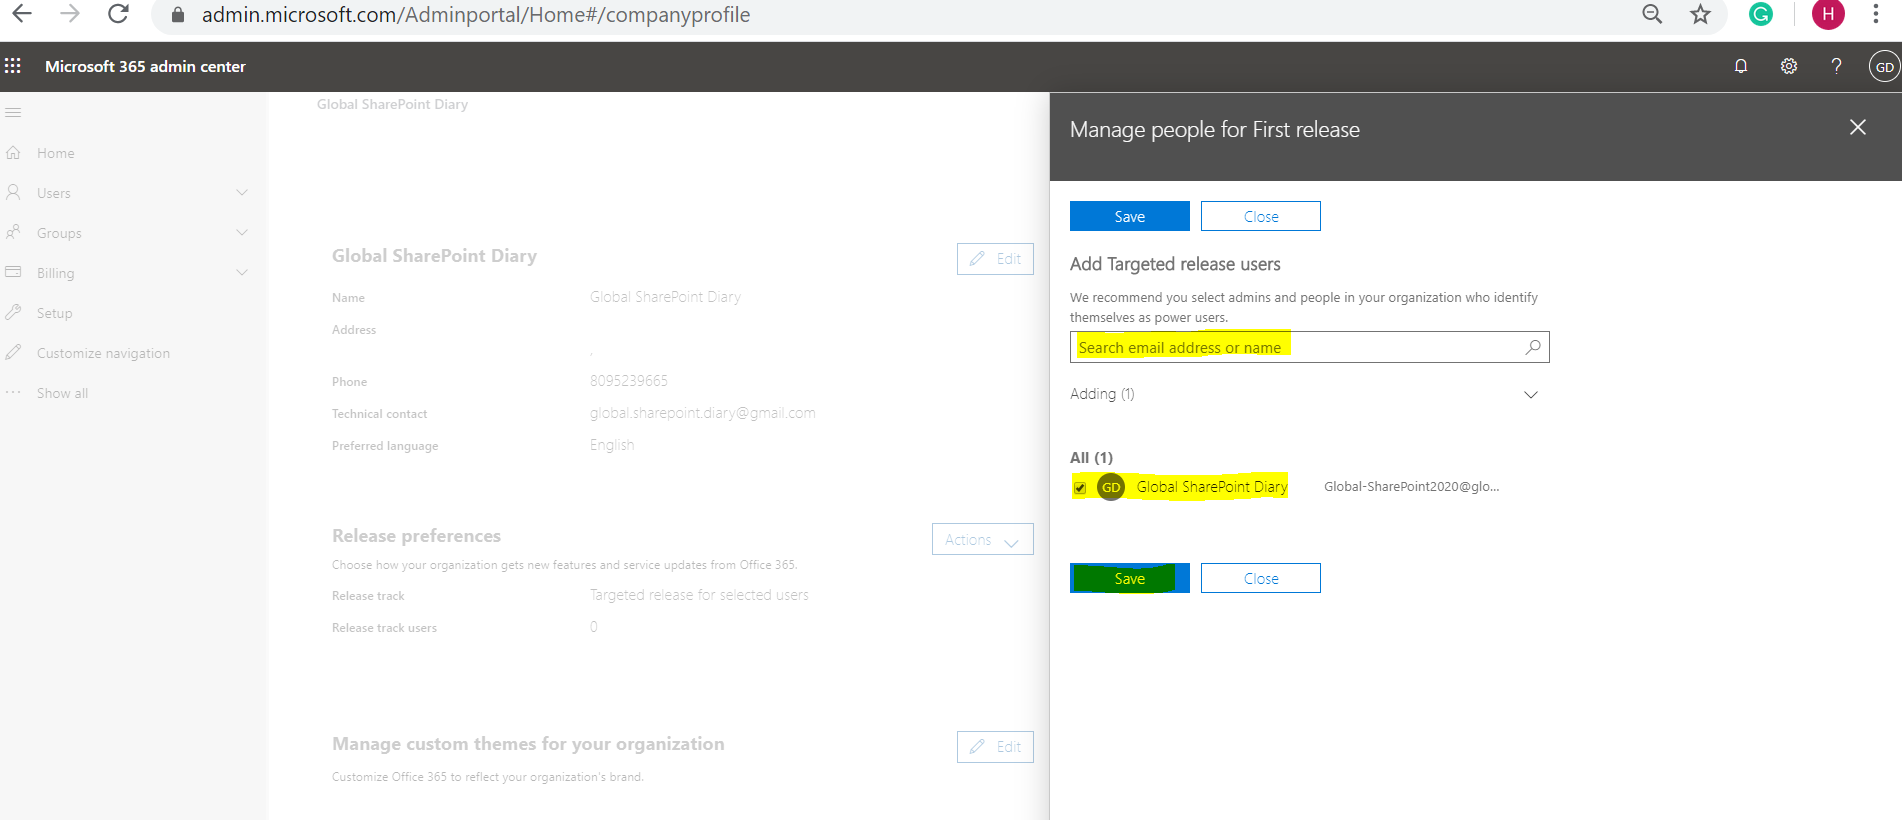 Add Targeted release users - Release Preferences in Office 365 - Organization Profile